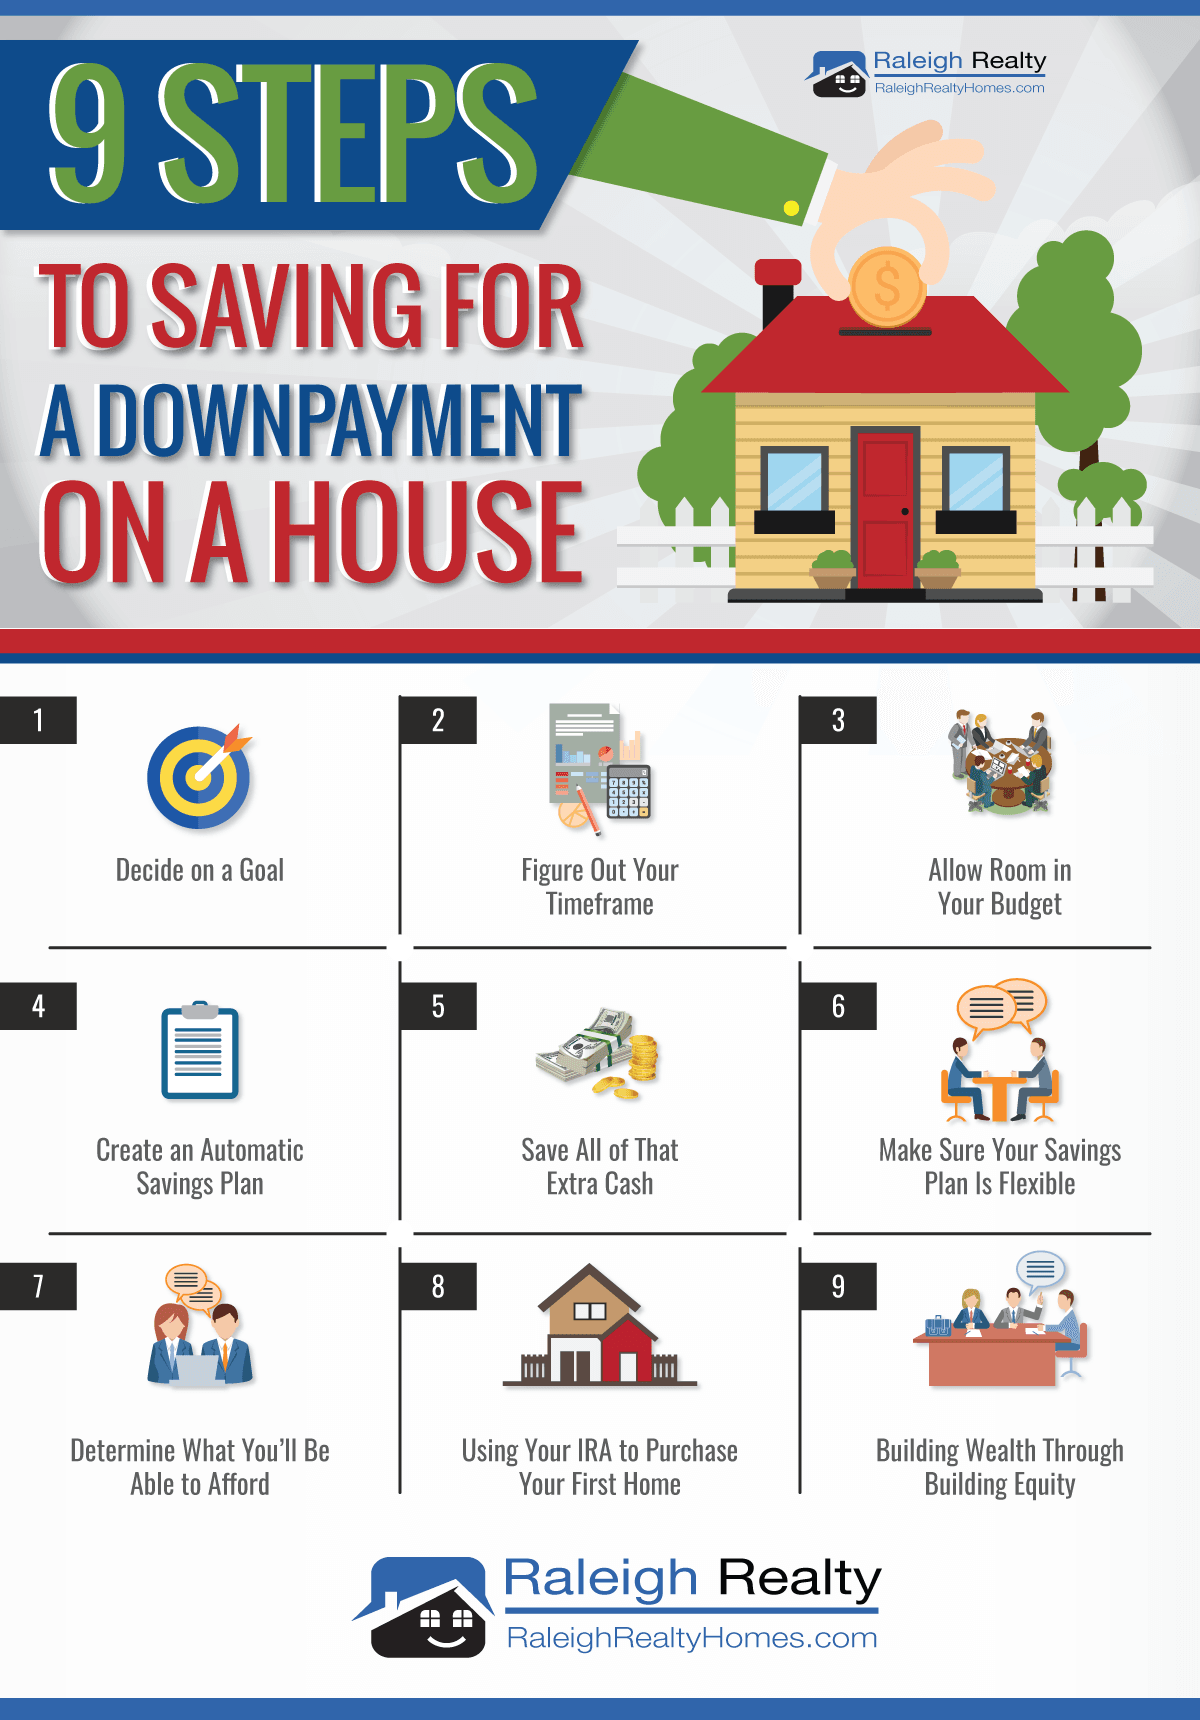 Saving for a Downpayment on a House